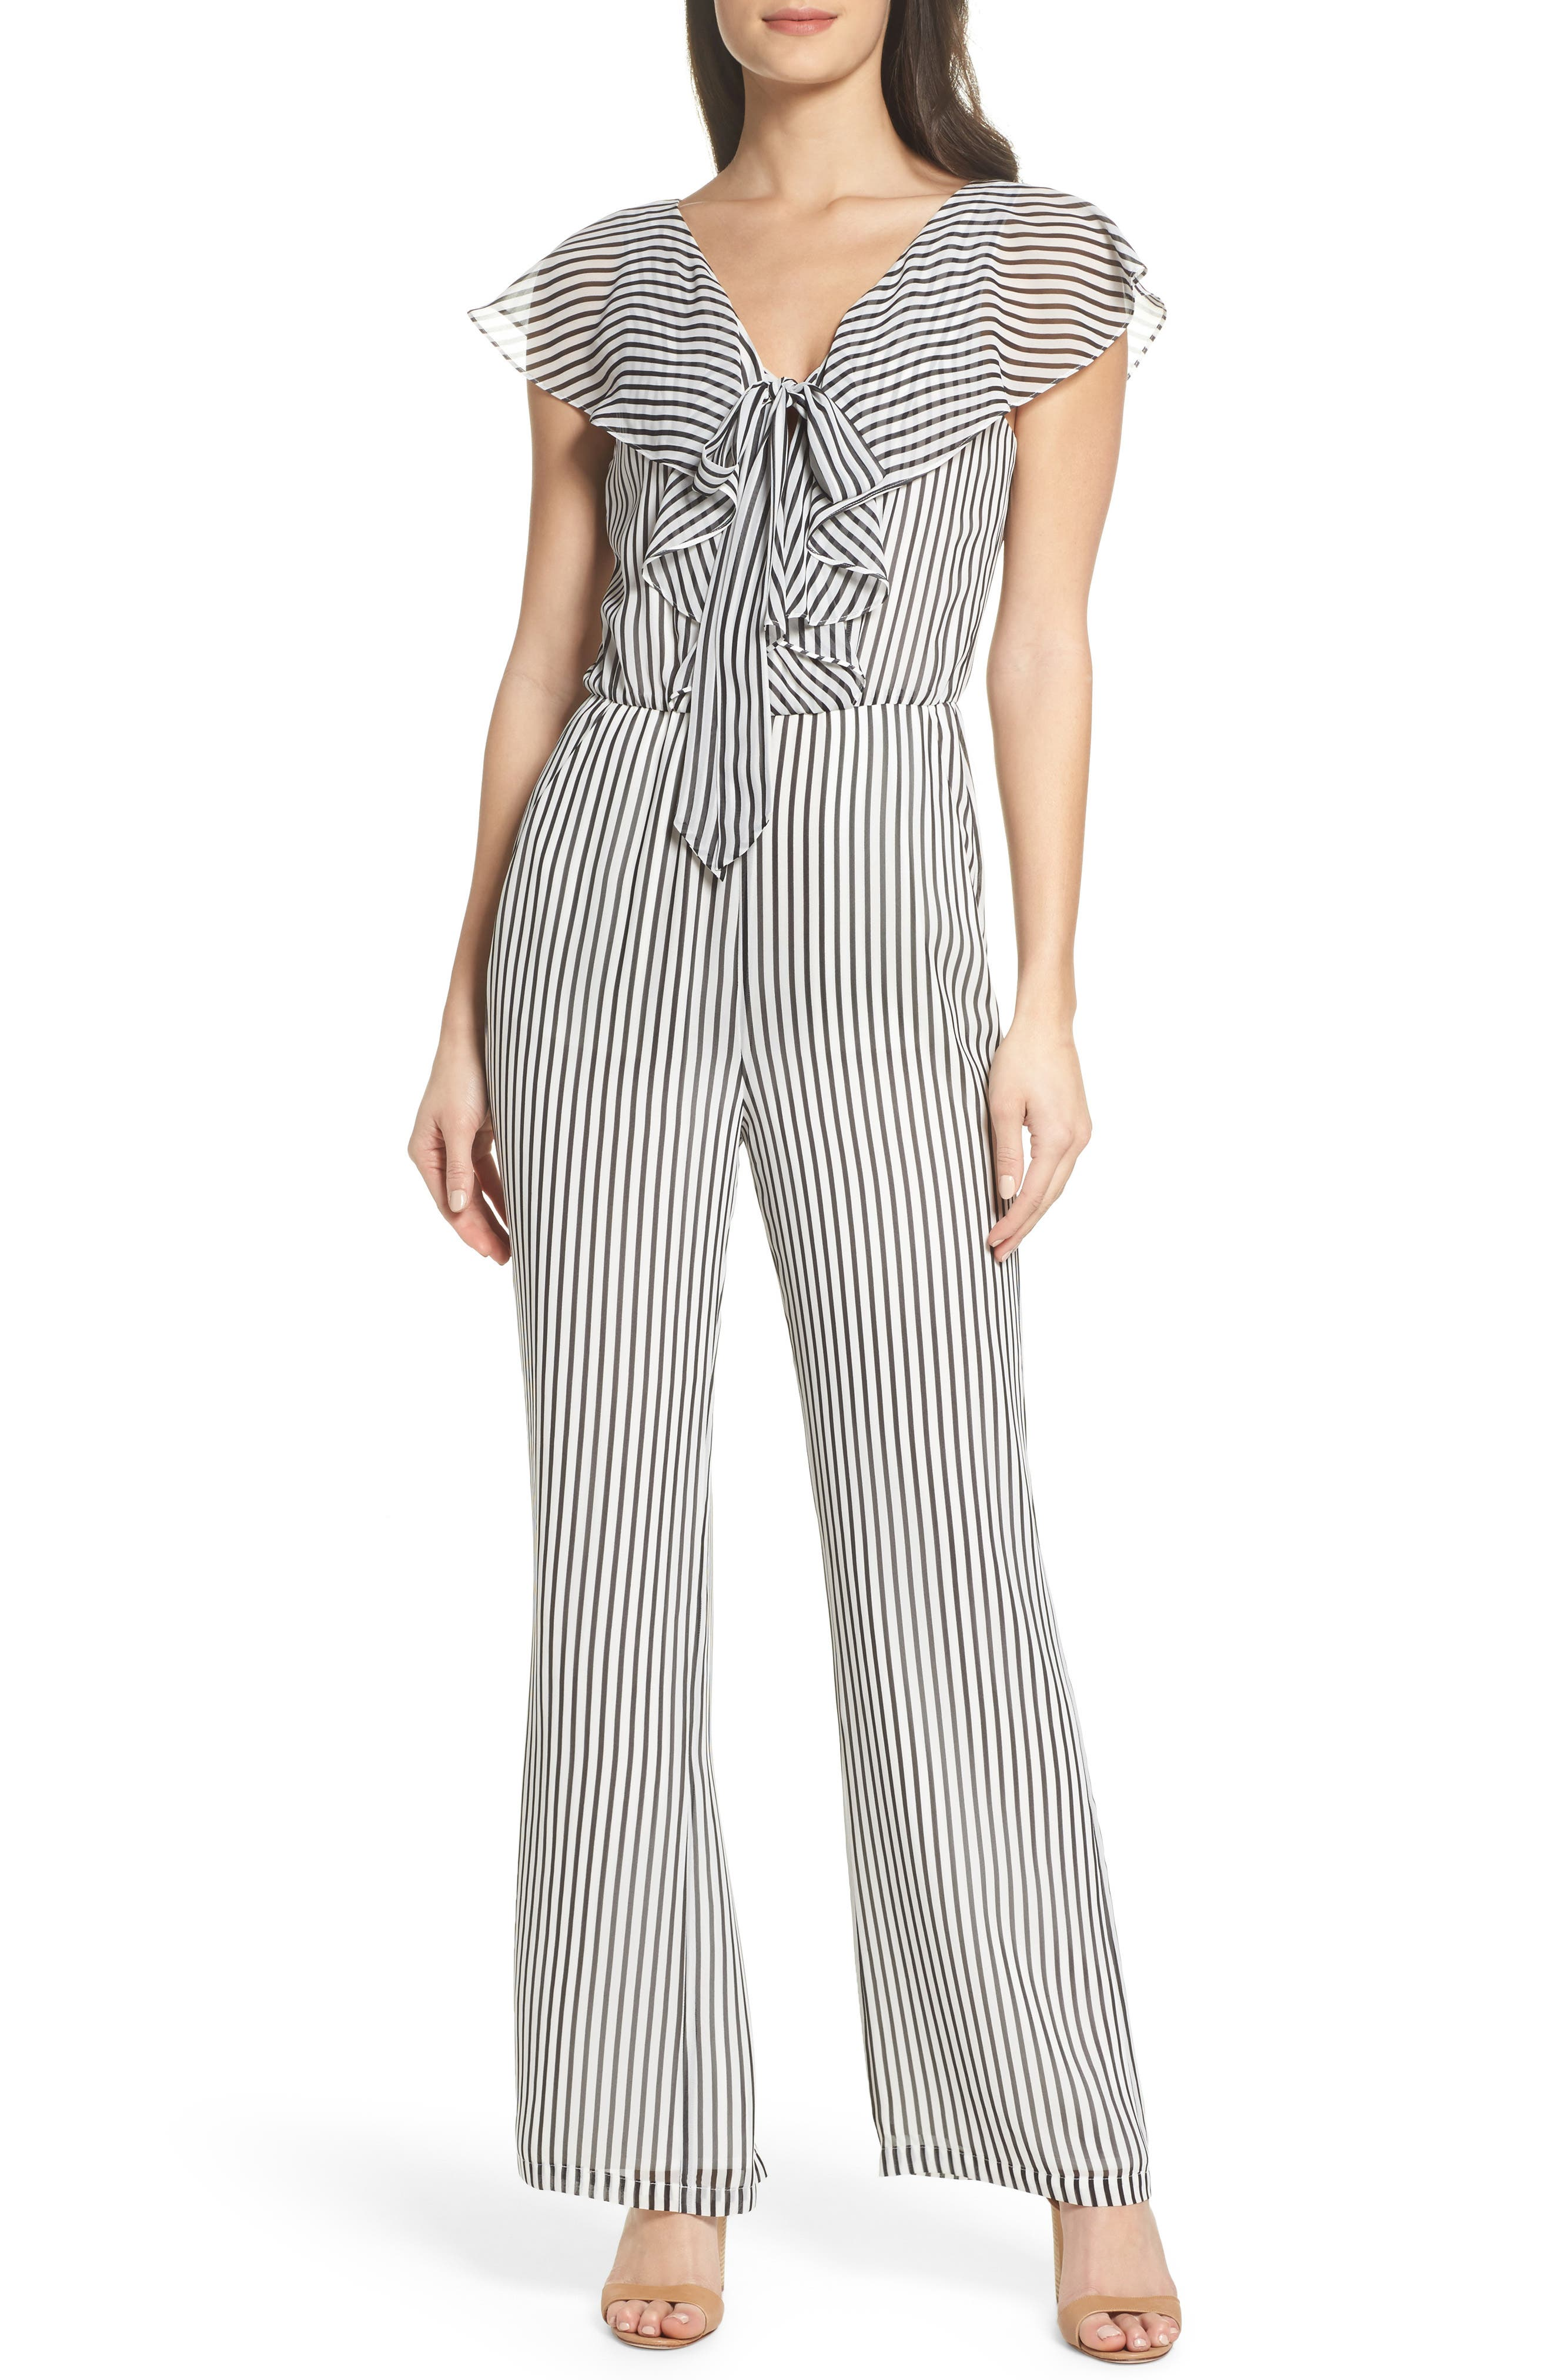 Cherry on Top Stripe Ruffle Jumpsuit,                         Main,                         color, 100